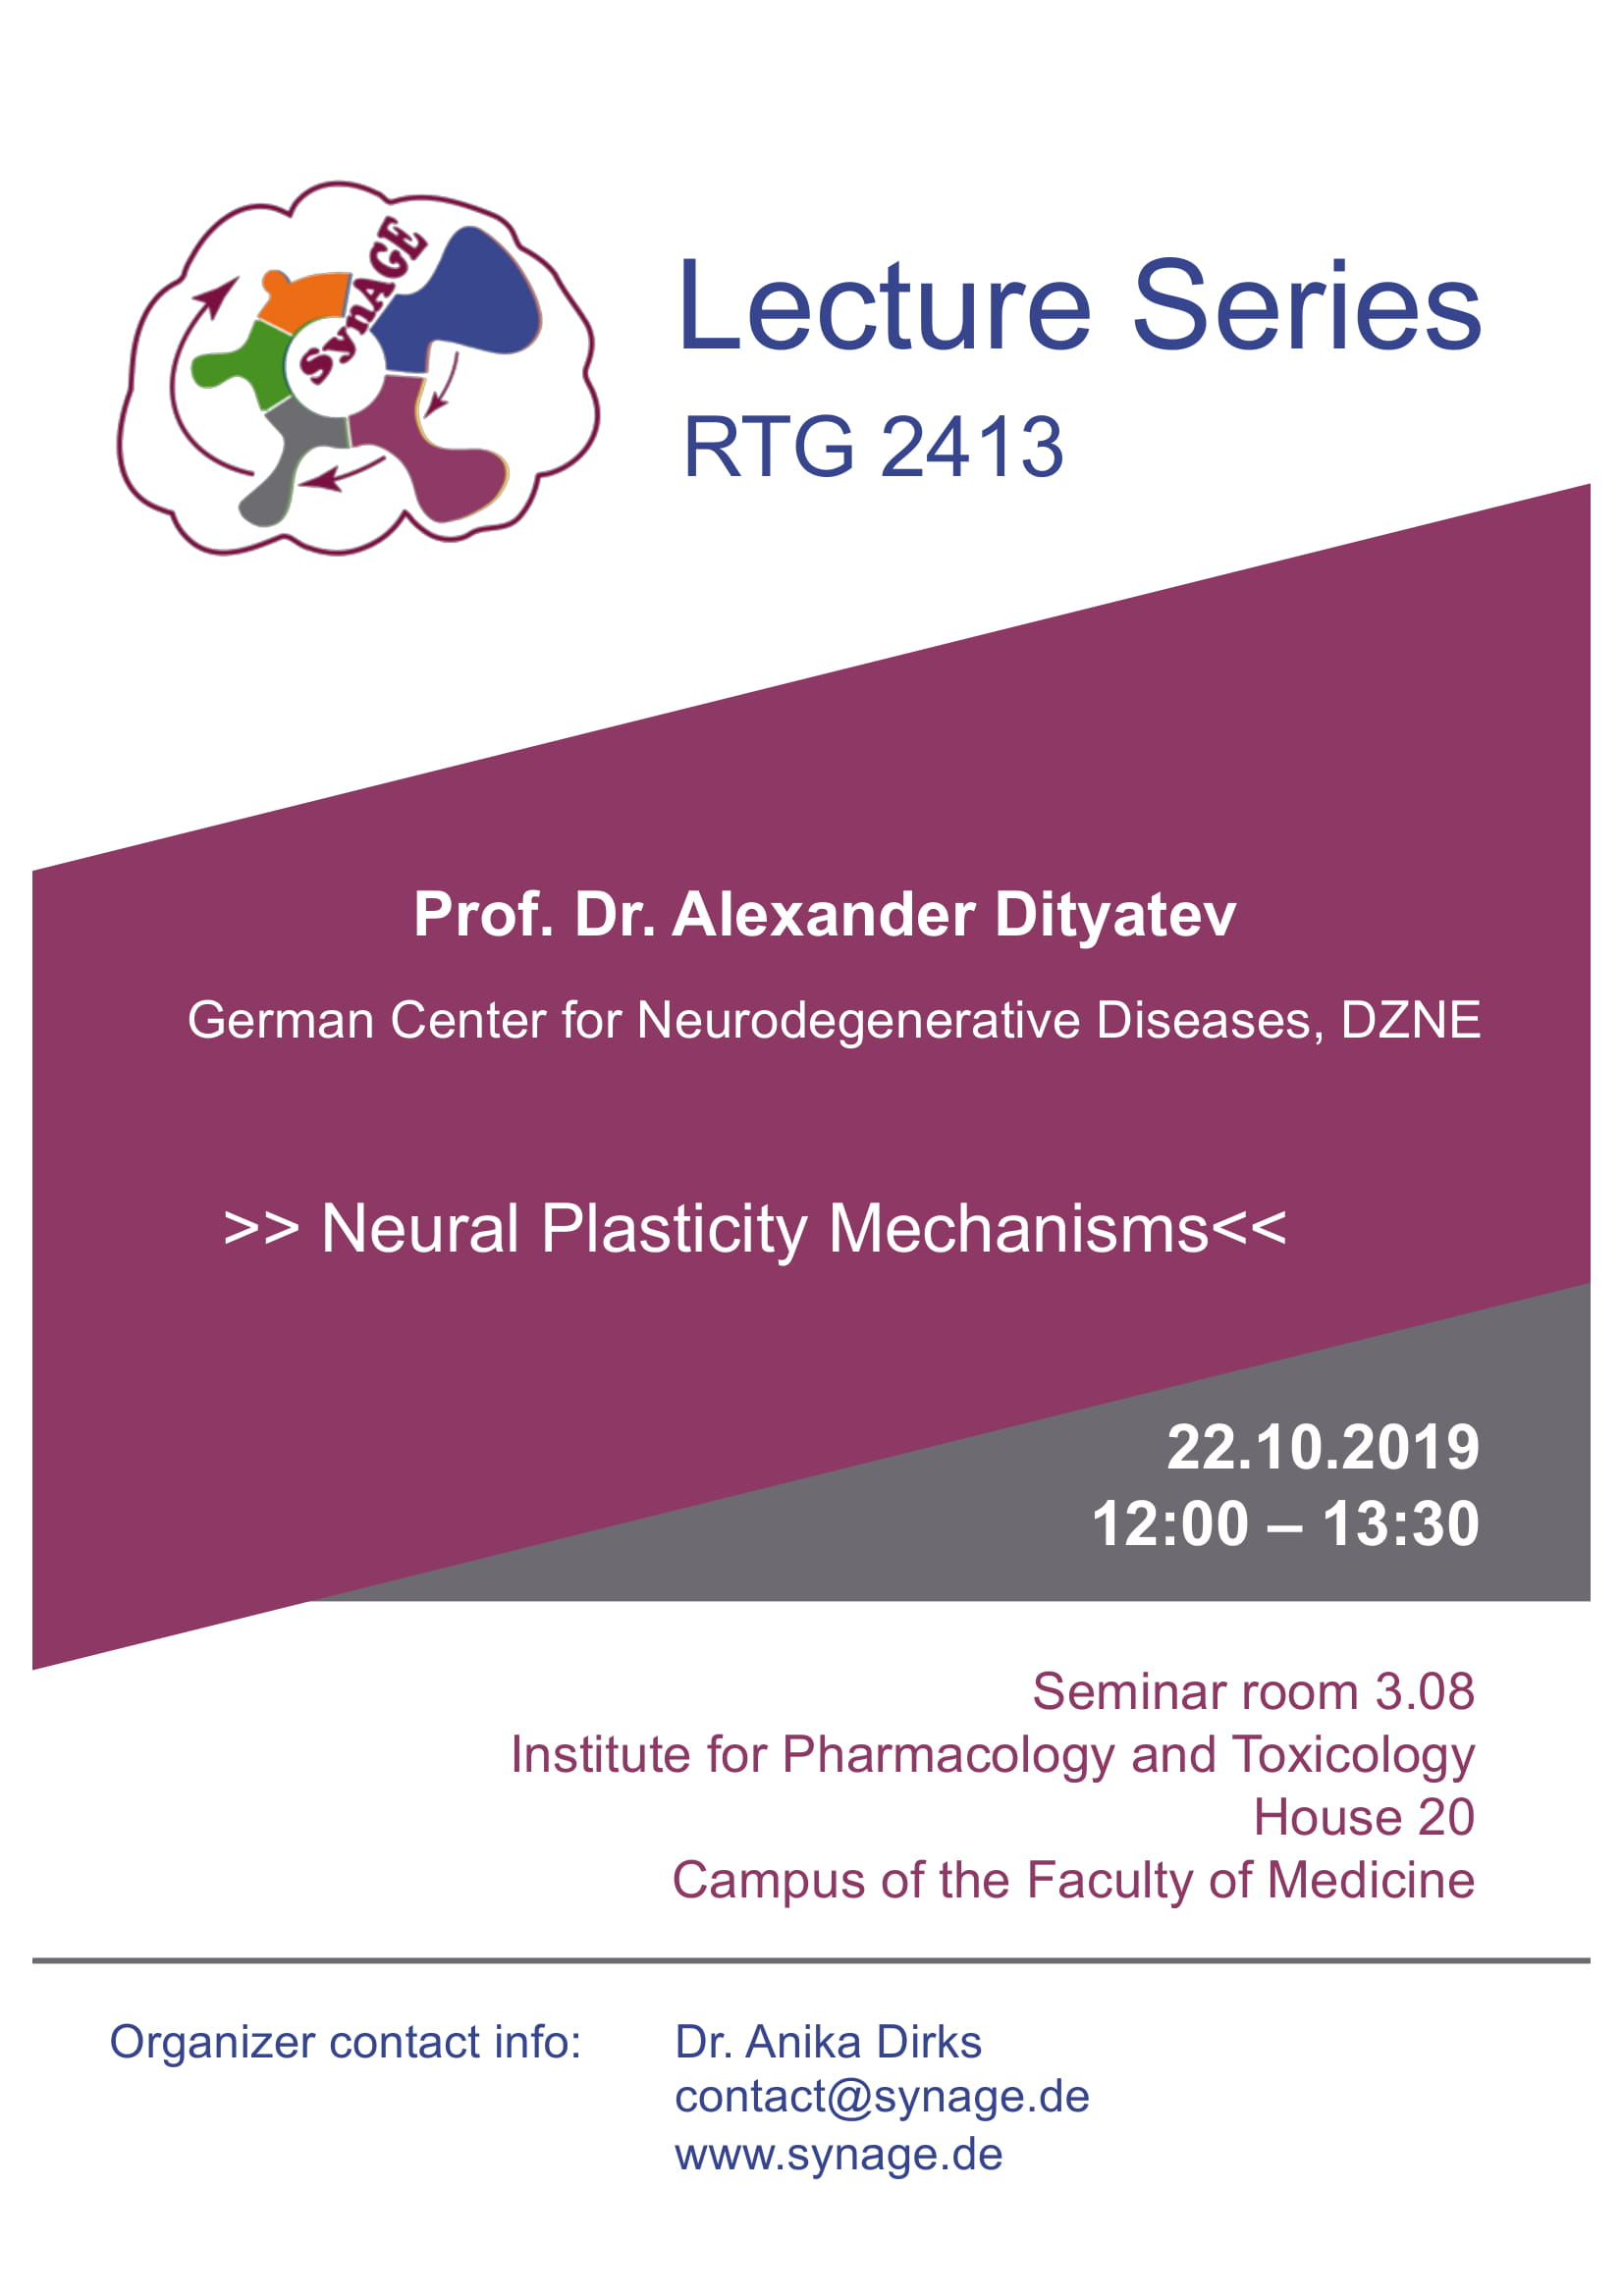 RTG 2413 SynAGE Lecture Series: Neural Plasticity Mechanisms @ Institute of Pharmacoology and Toxicology, House 20, Seminarroom 3.08